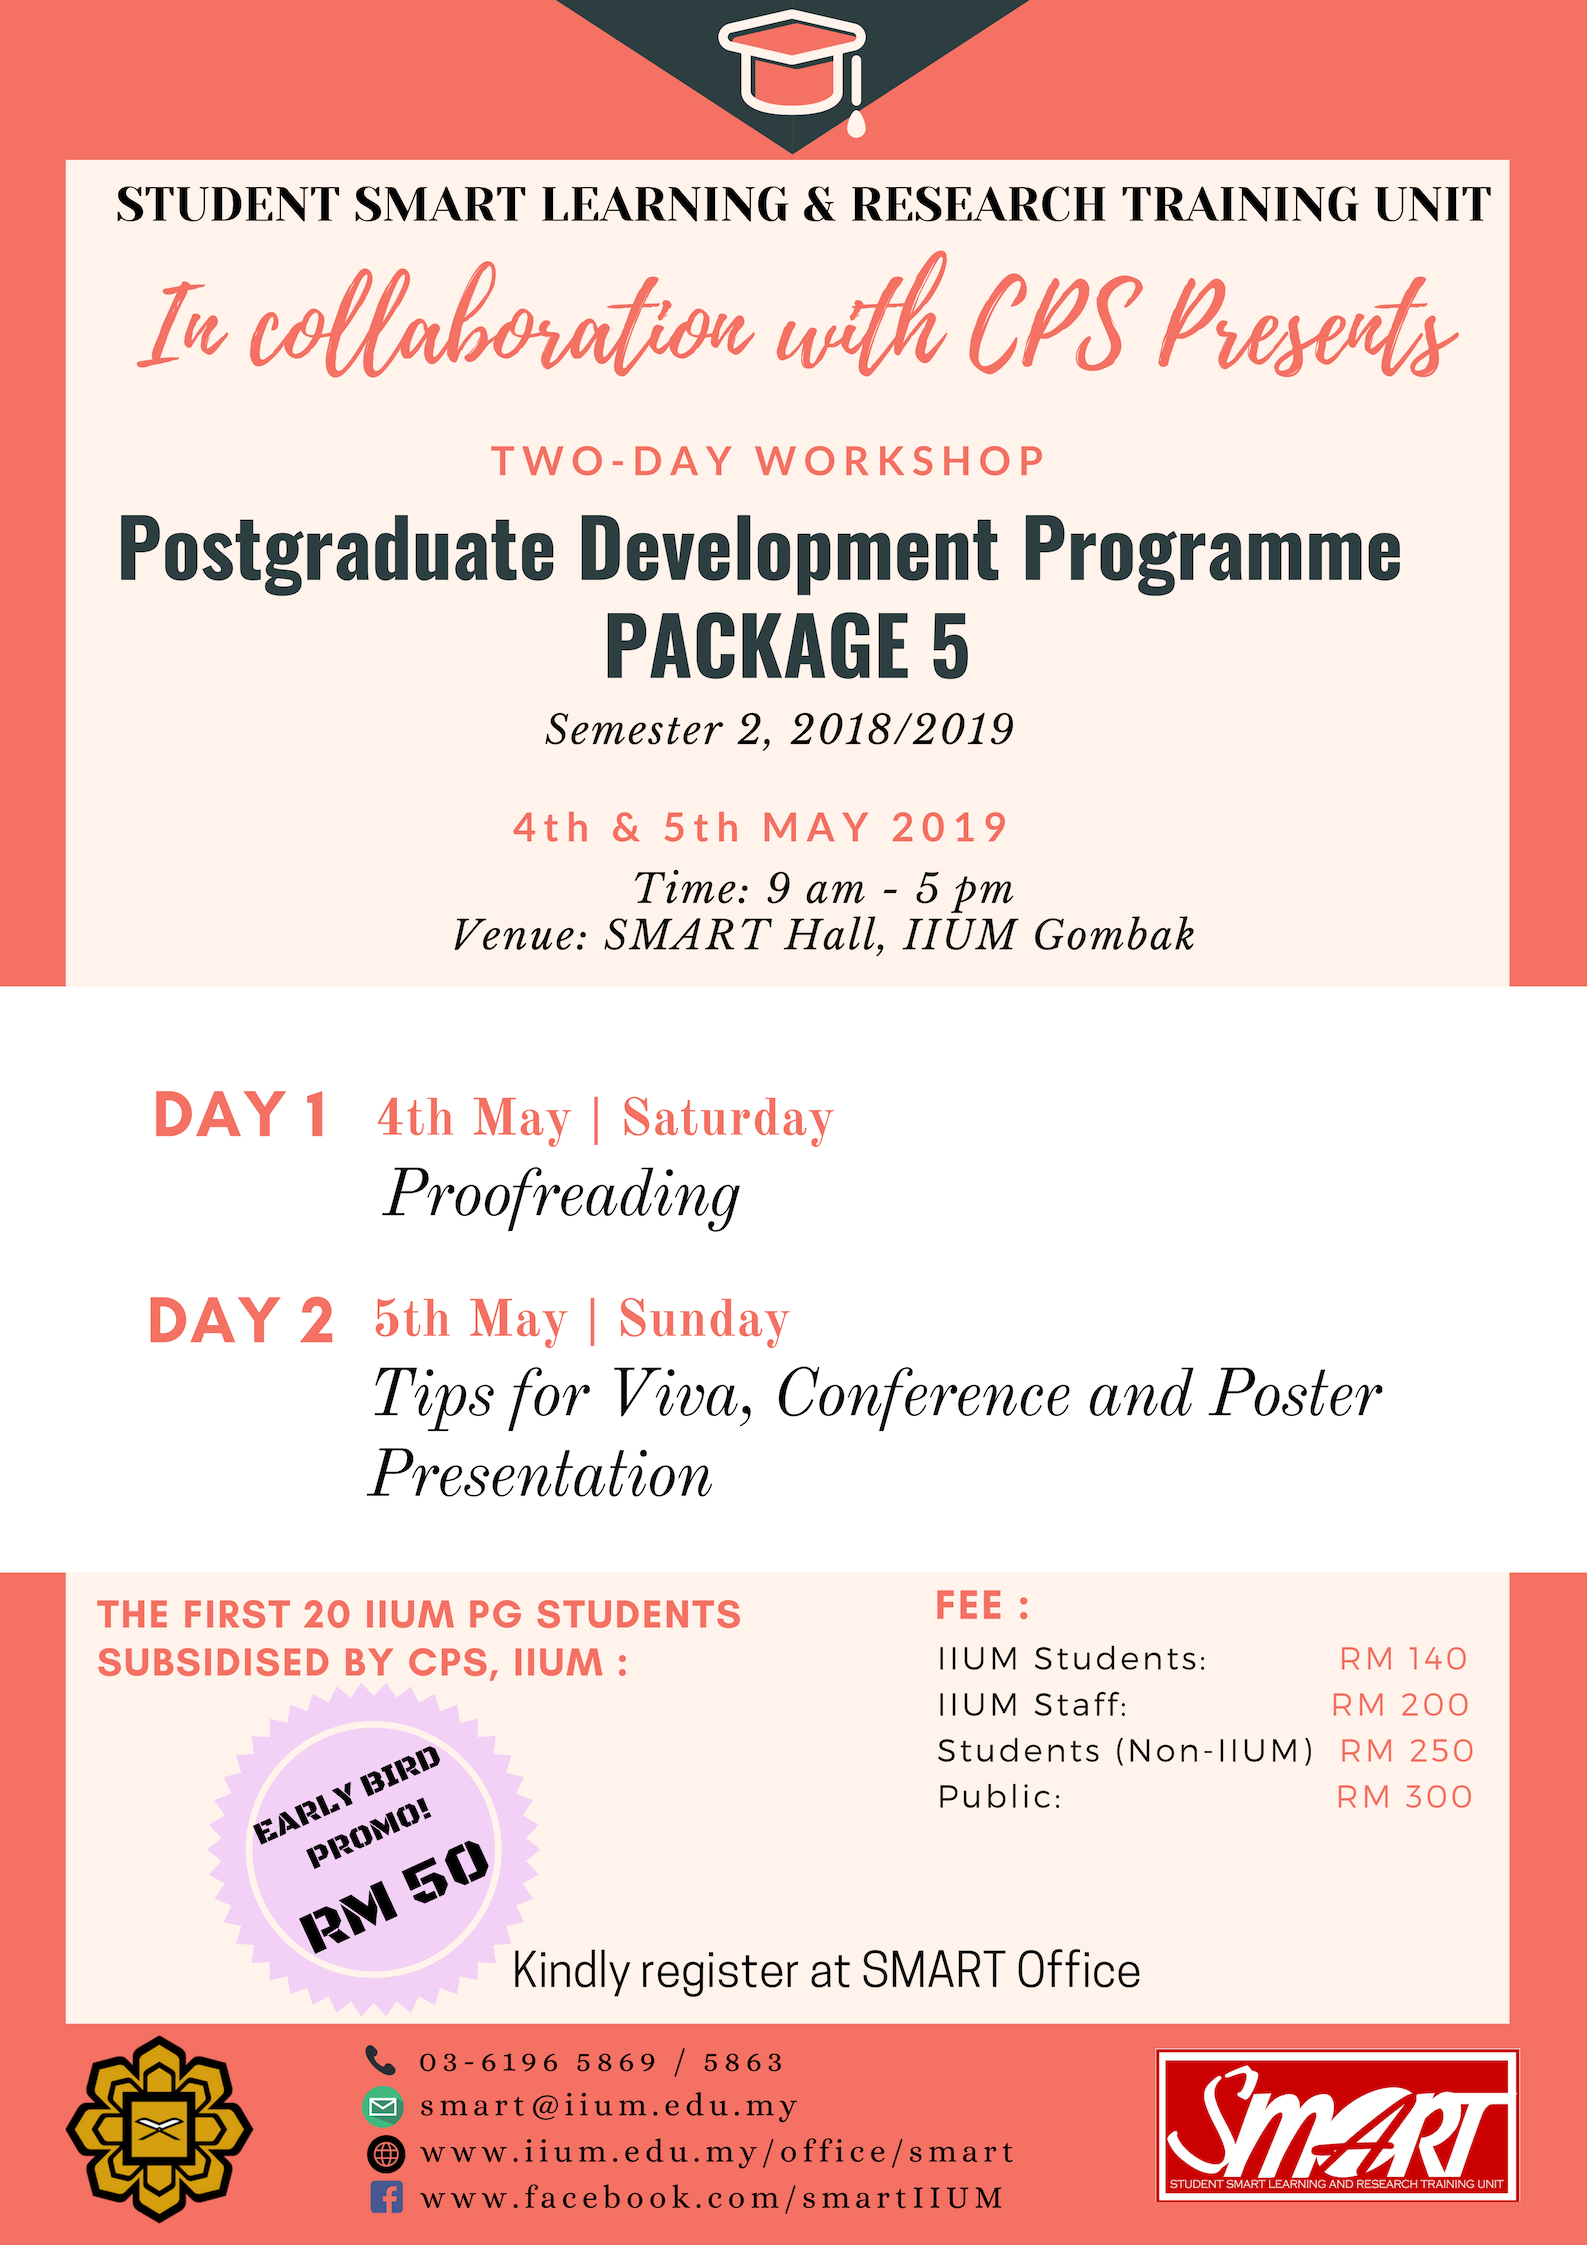 WORKSHOP : POSTGRADUATE DEVELOPMENT PROGRAMME PACKAGE 5